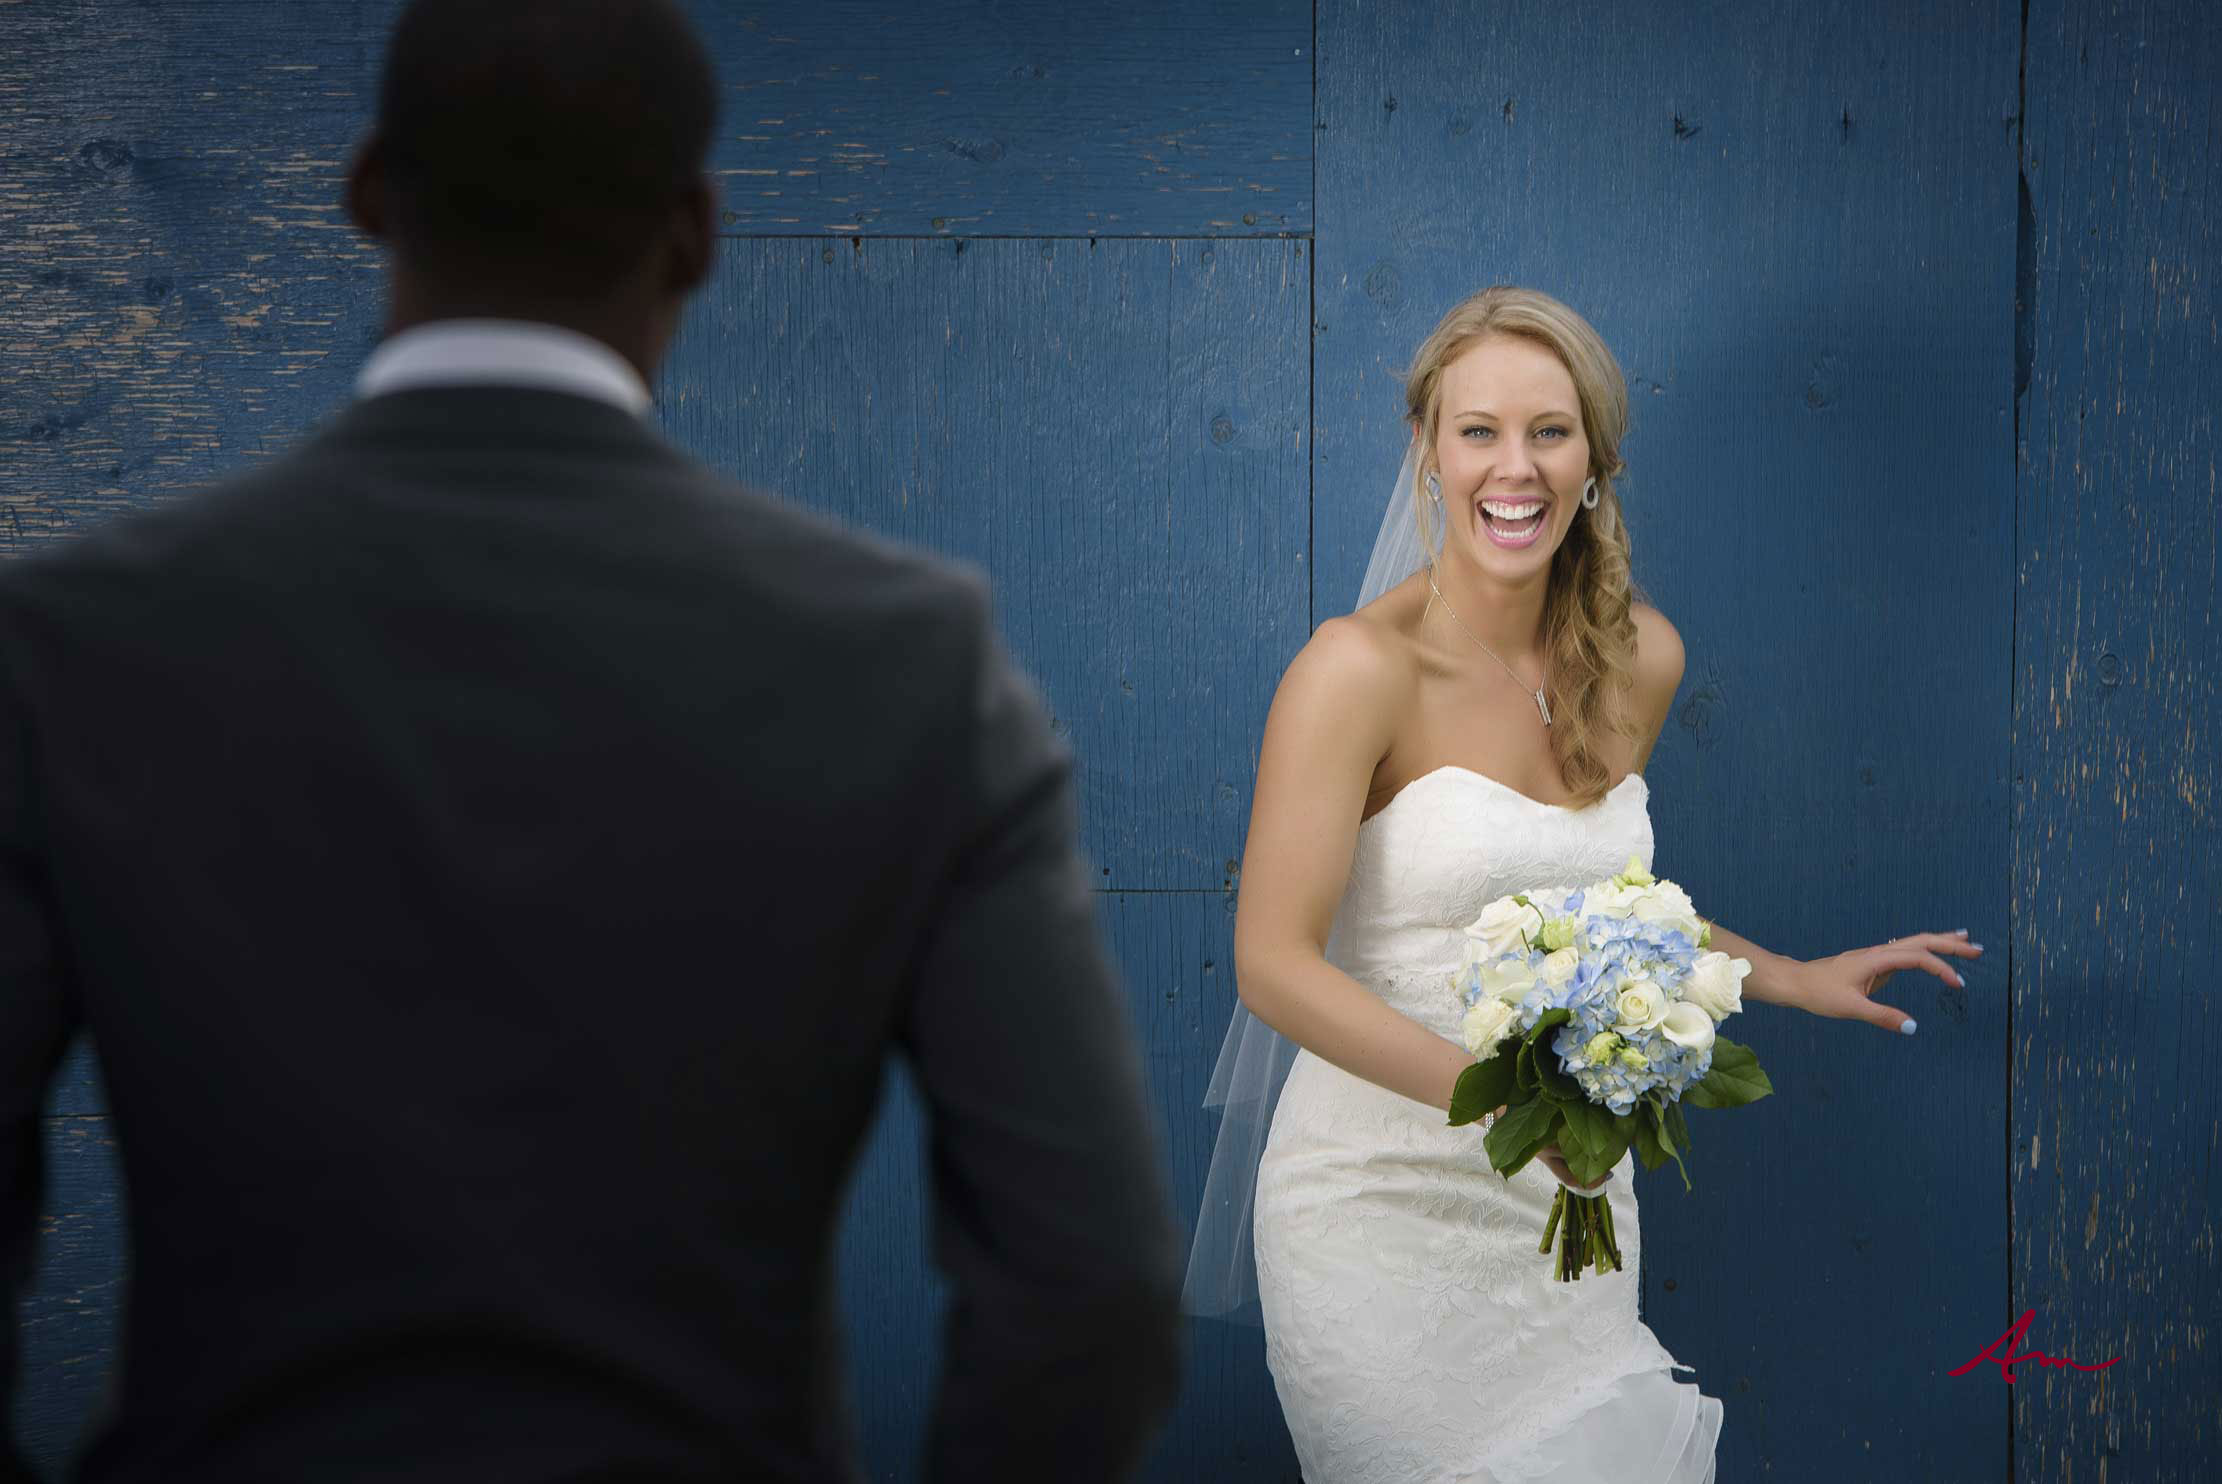 Liscombe-wedding-bride-laughing.jpg